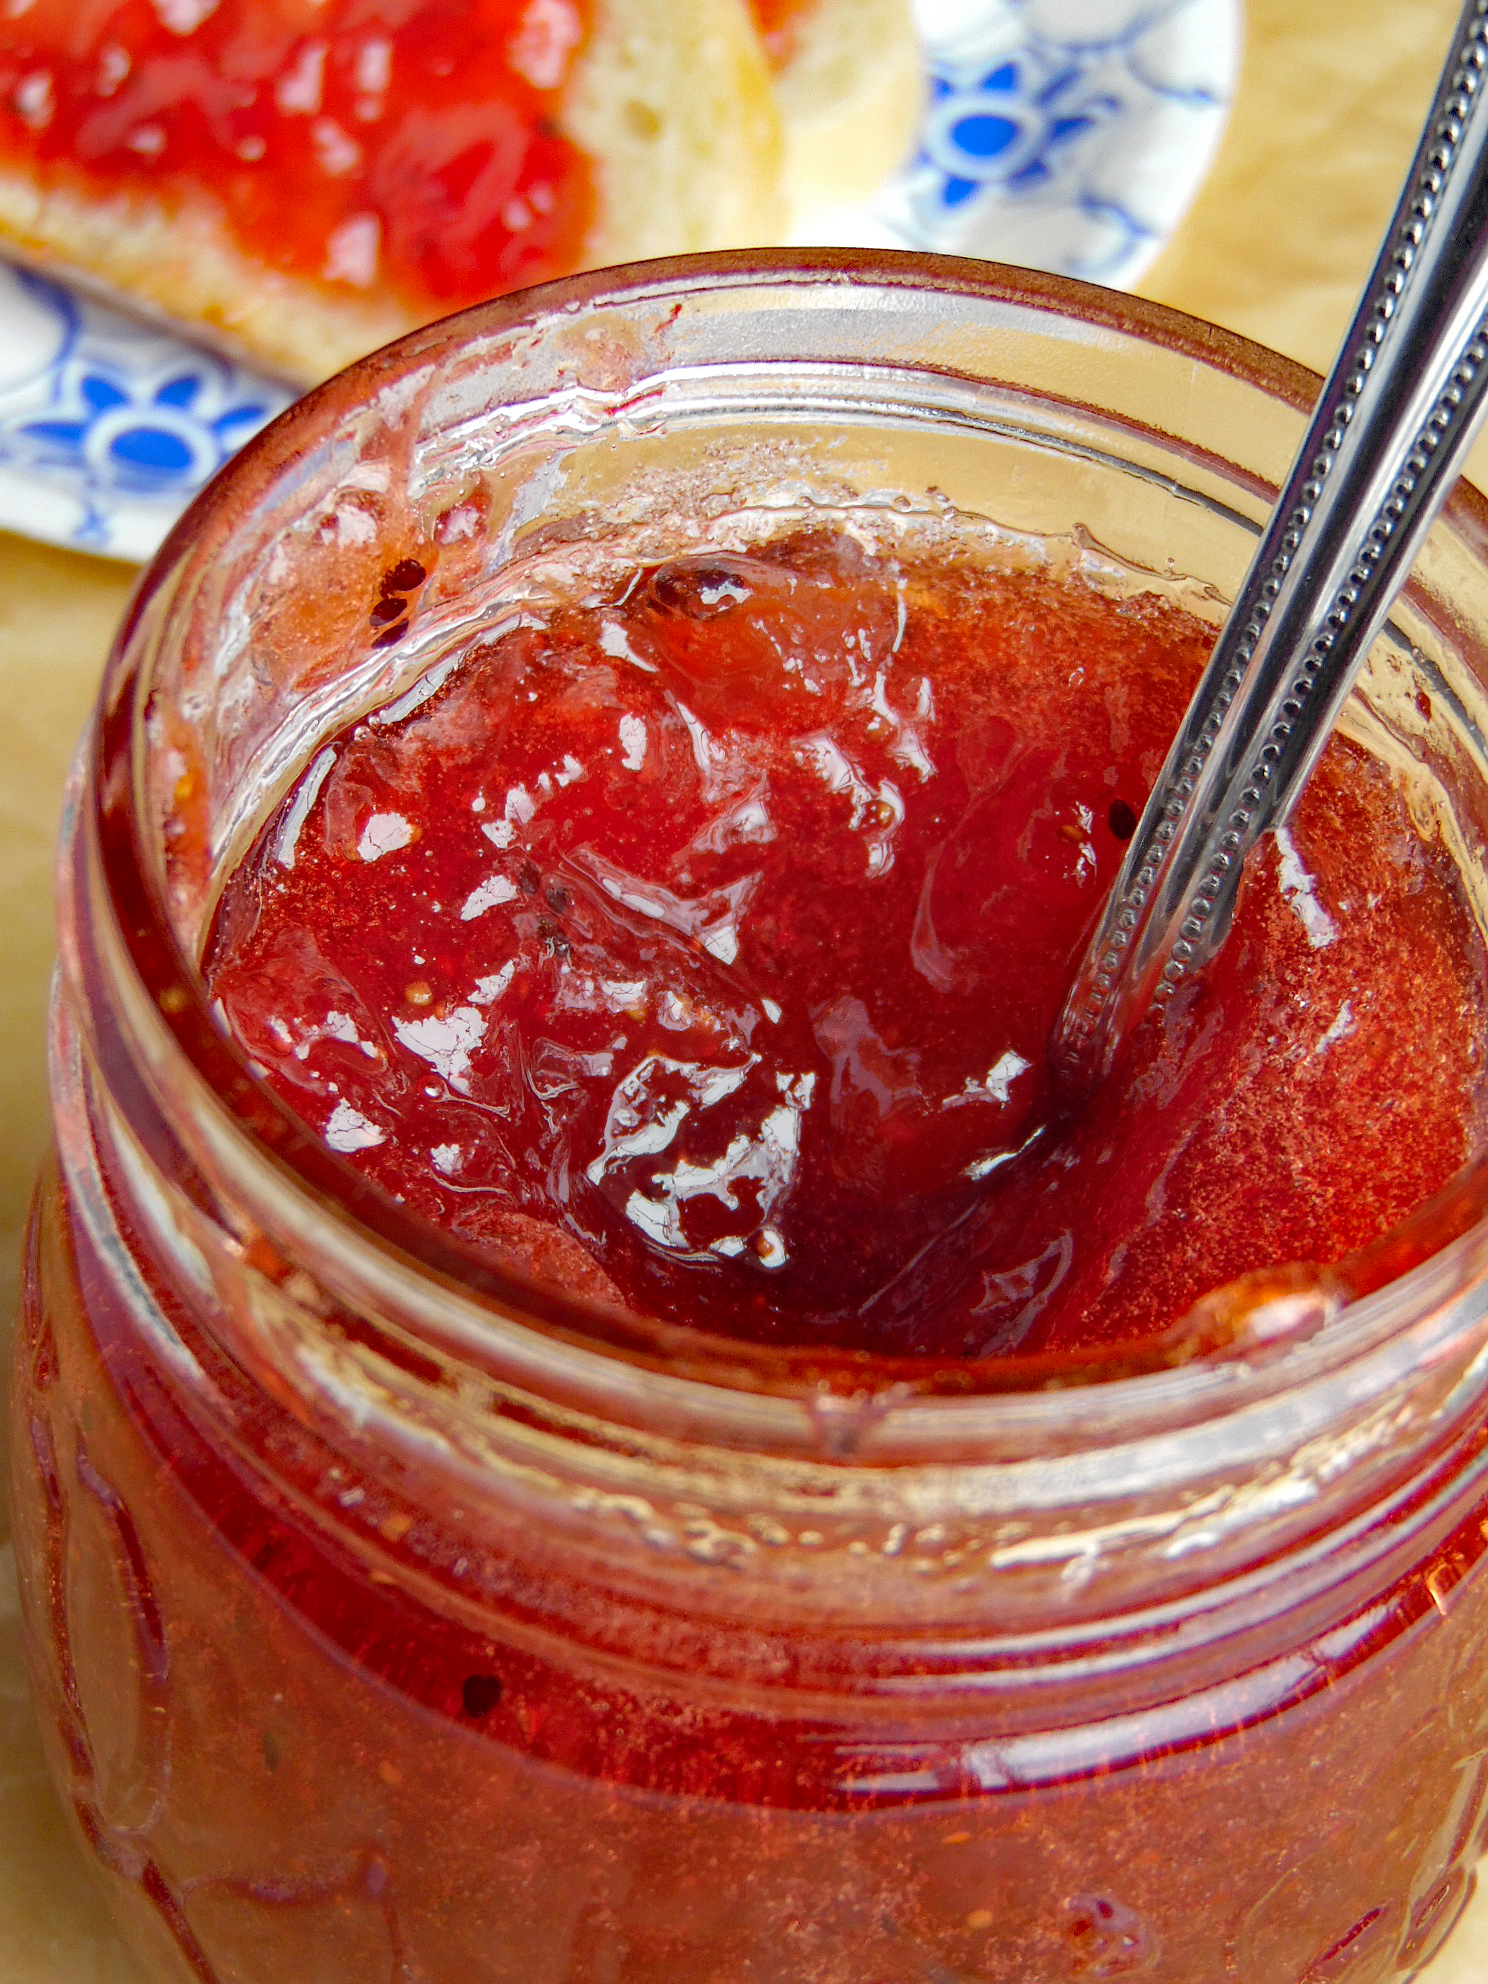 Strawberry Kiwi Jam - Canning Instructions Included